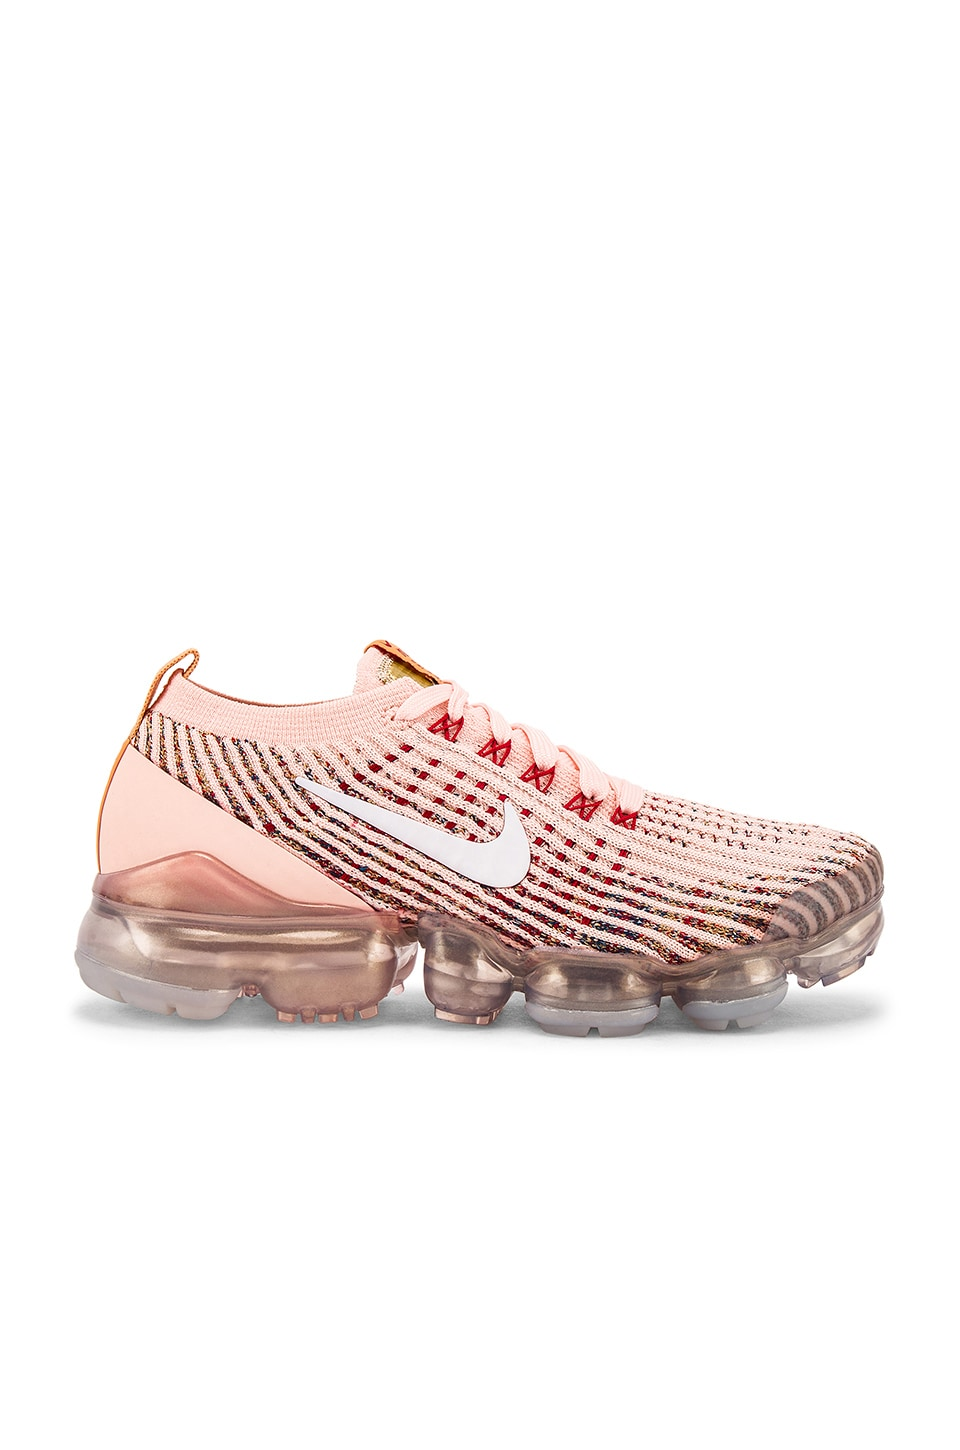 Nike Air Vapormax Flyknit 3 Sneaker in Sunset Tint, White, Blue Force & Gym Red